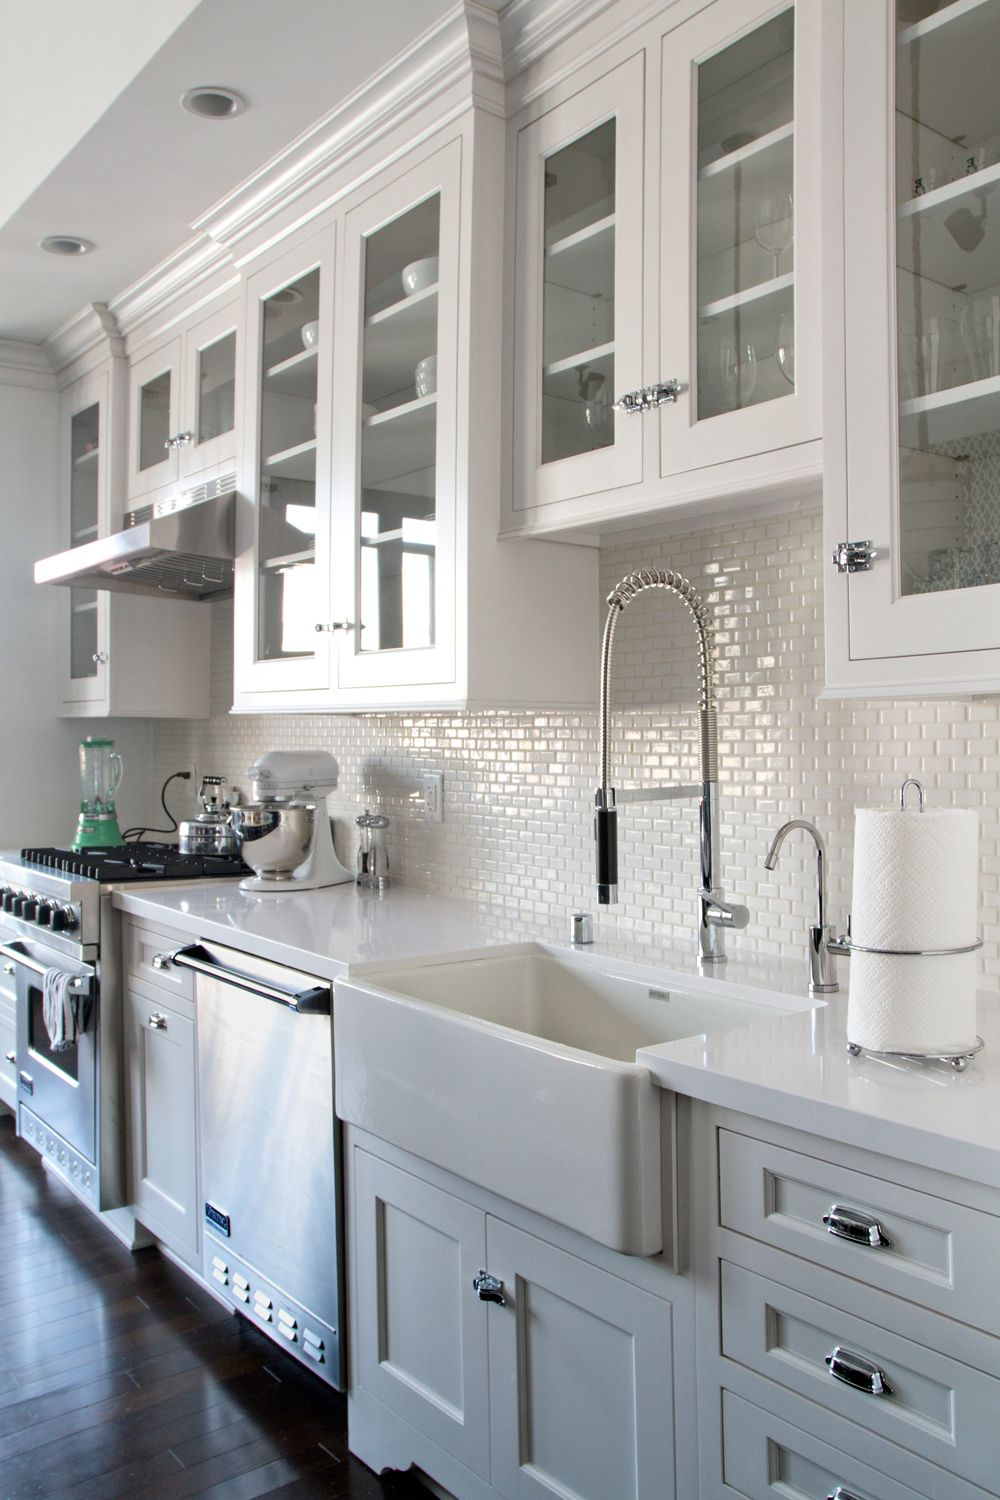 White Kitchen Cabinets, Glass Doors, Dark Wood Floors. Backsplash   White  Mini Subway Tile